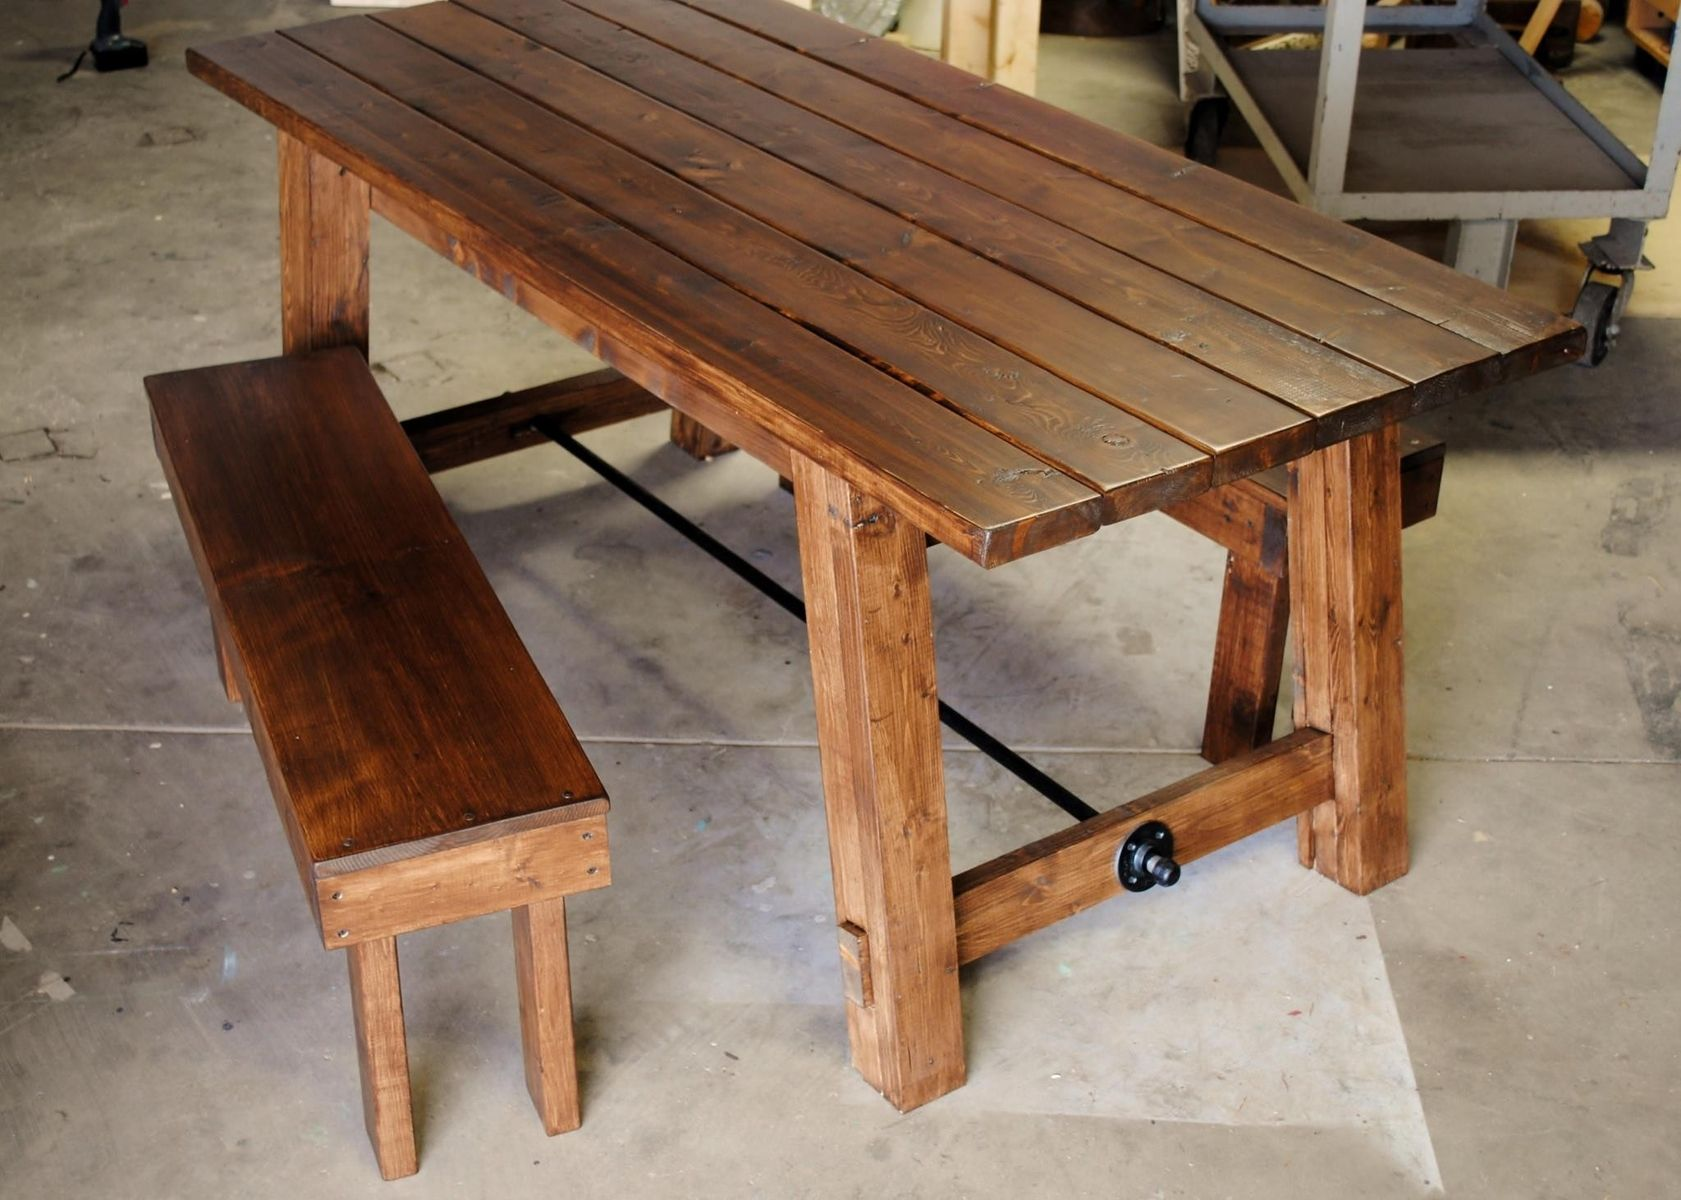 Custom Made Farmhouse Table   Could I Make Something Like This?? Custommade .com